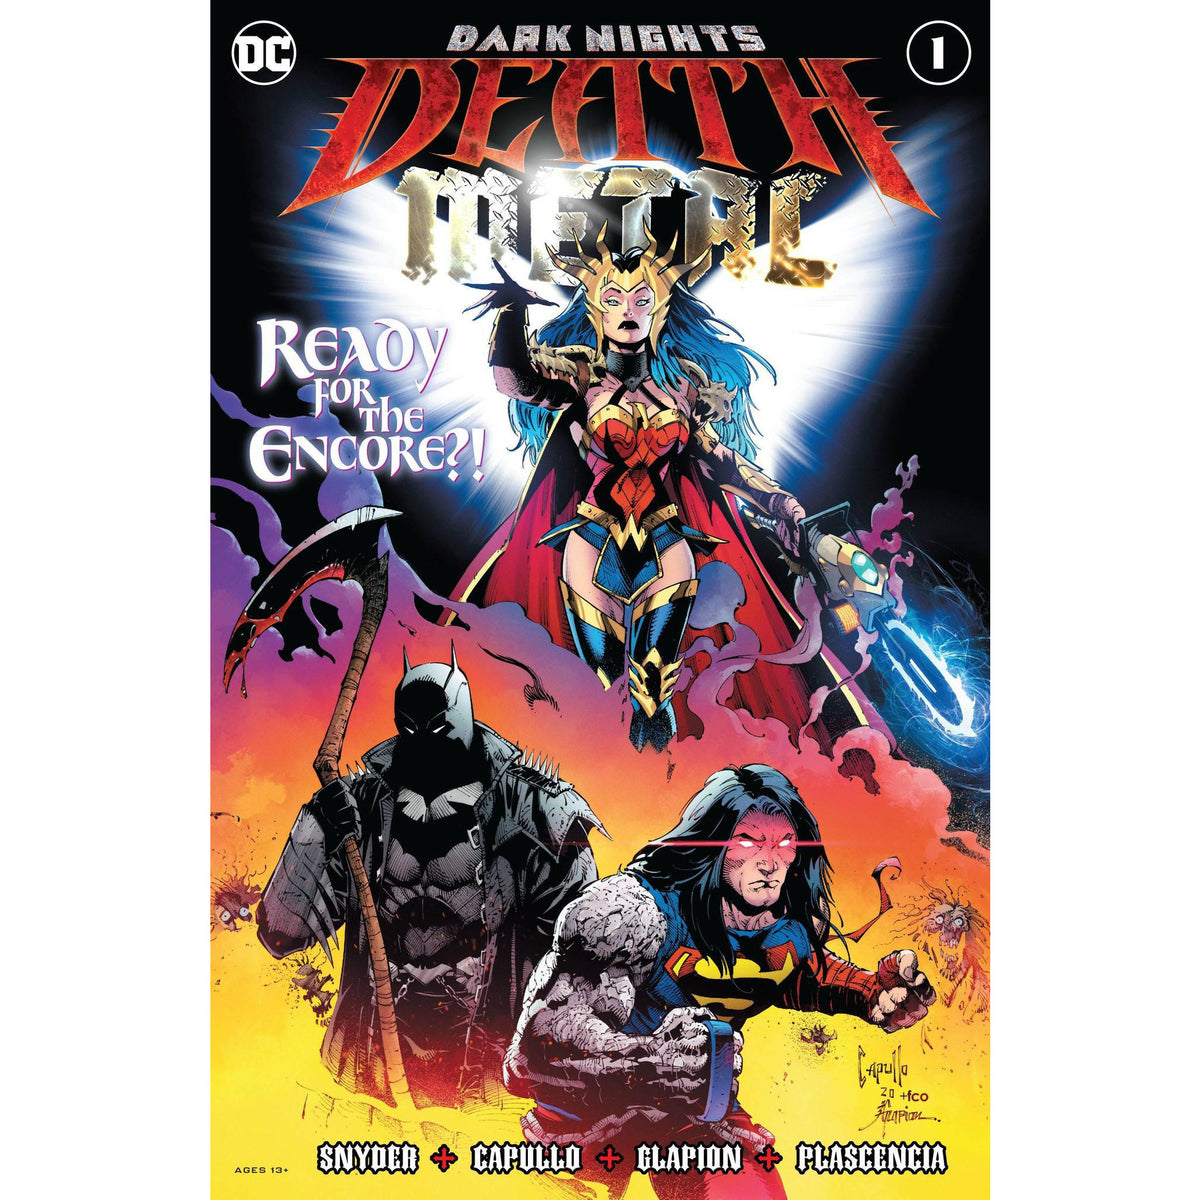 DARK NIGHTS DEATH METAL #1 - 4 COVER SET - CAPULLO FINCH ARTGERM - FREE SHIPPING